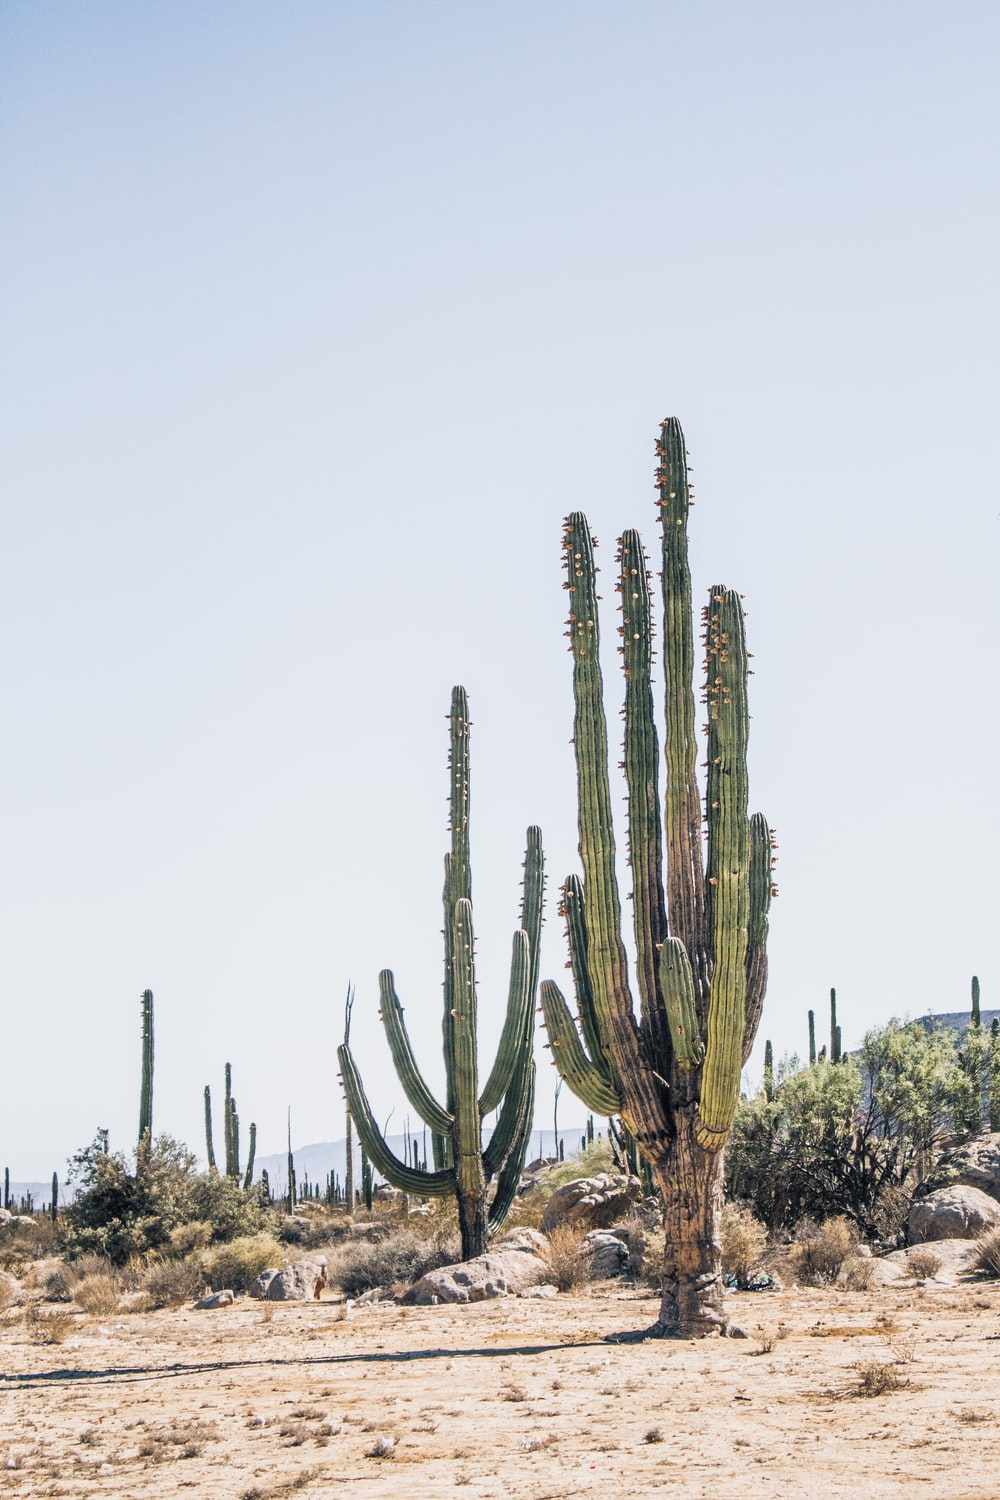 cactus plants on field during daytime